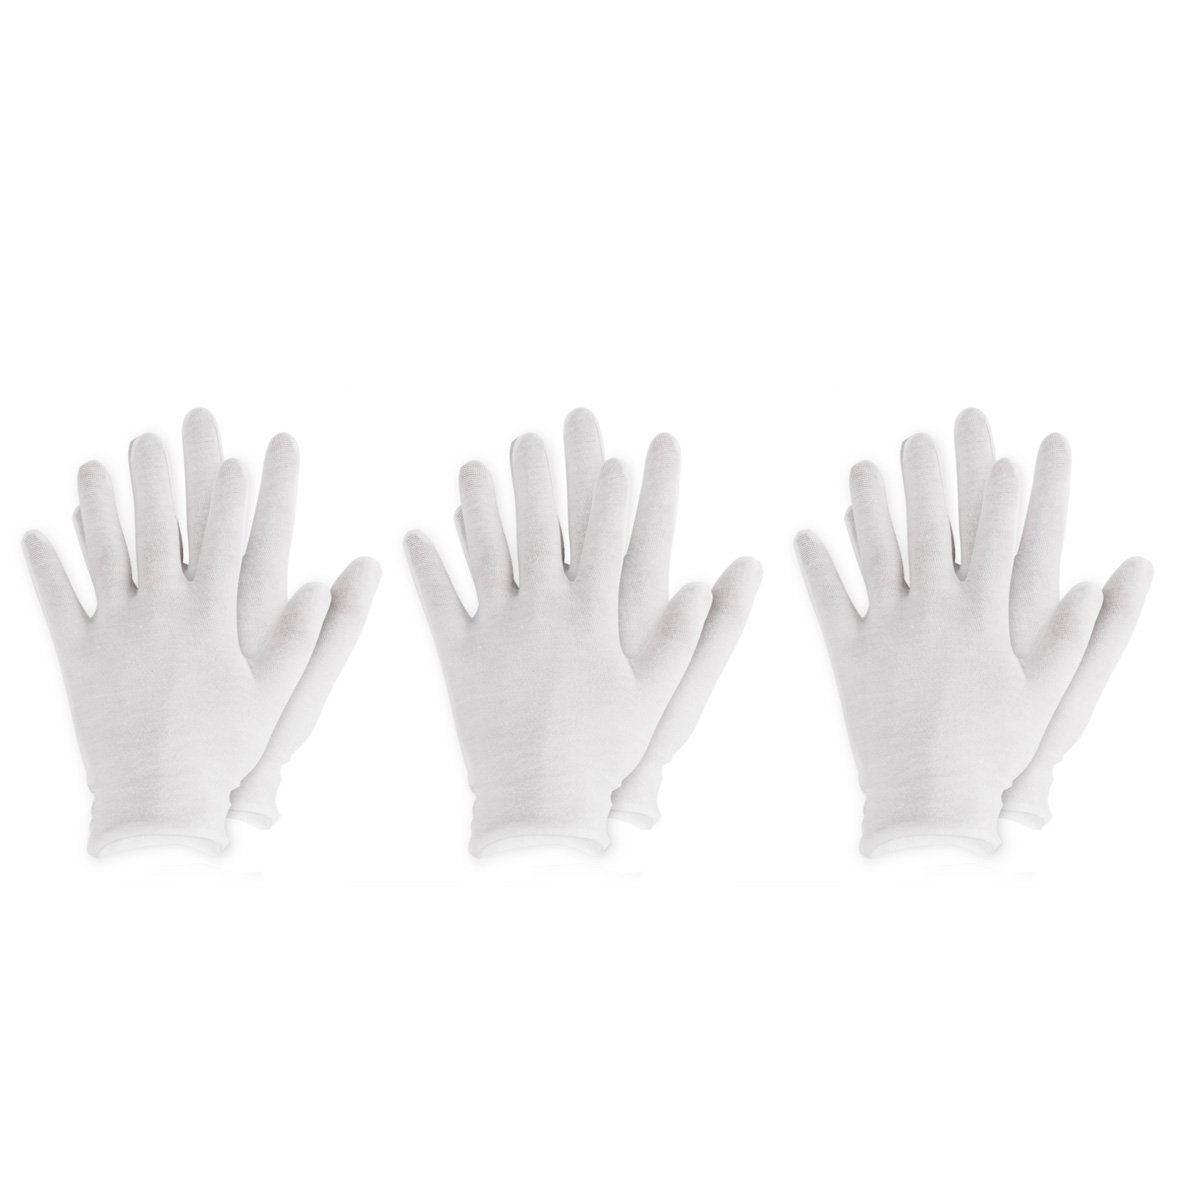 CHICTRY White Cotton Gloves Soft Lightweight Reusable Work Gloves for Dry Hand Moisturizing Hand Spa and Coin Jewelry Inspection 6 Pairs One Size